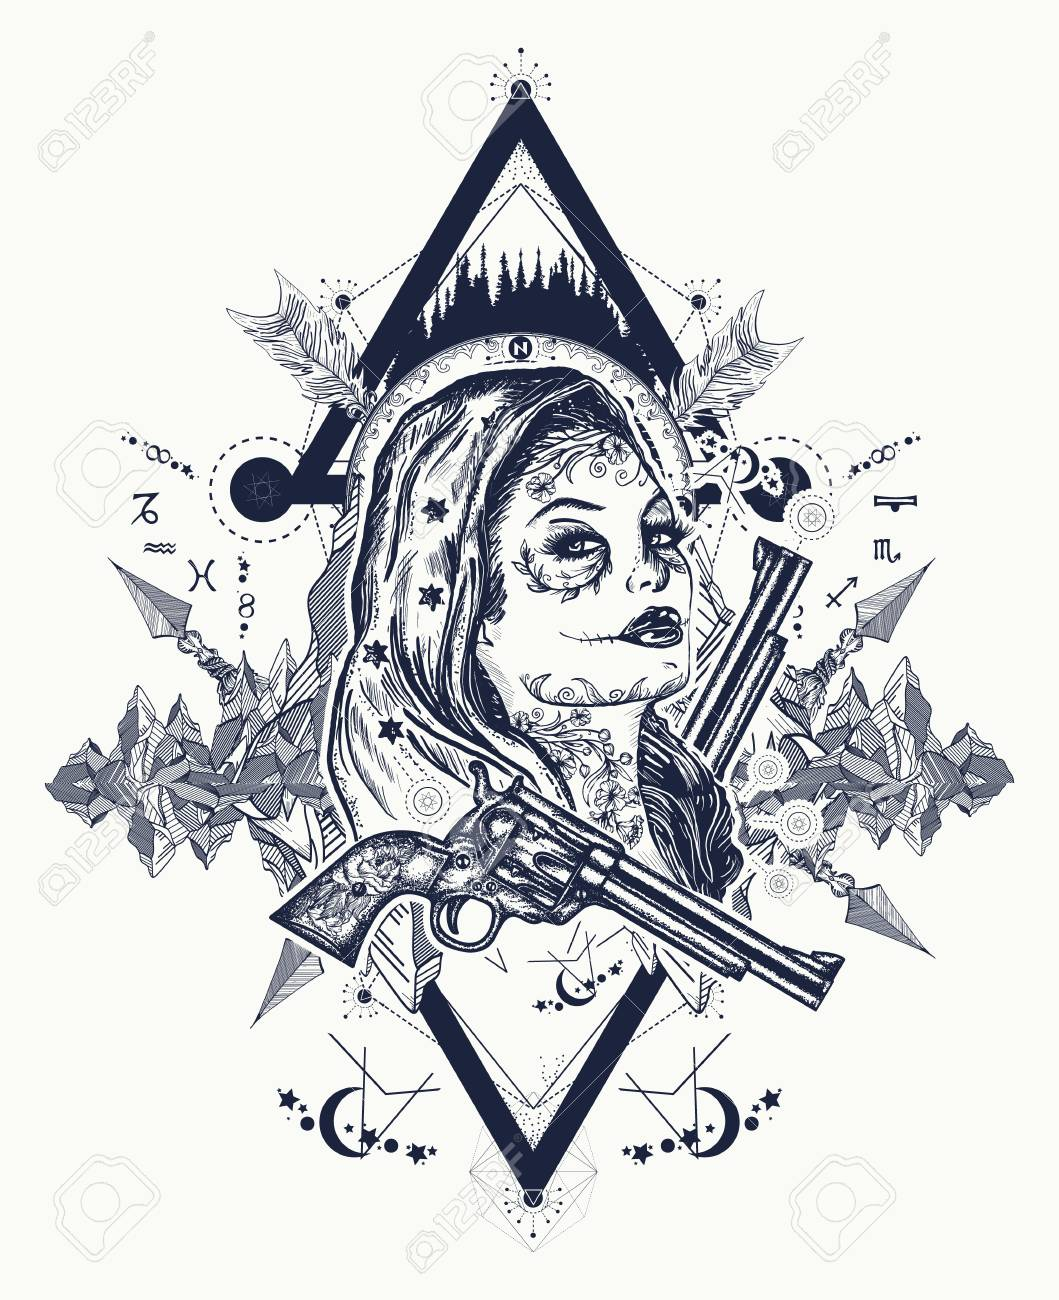 Mexican criminal tattoo art and t-shirt design  Wild west woman